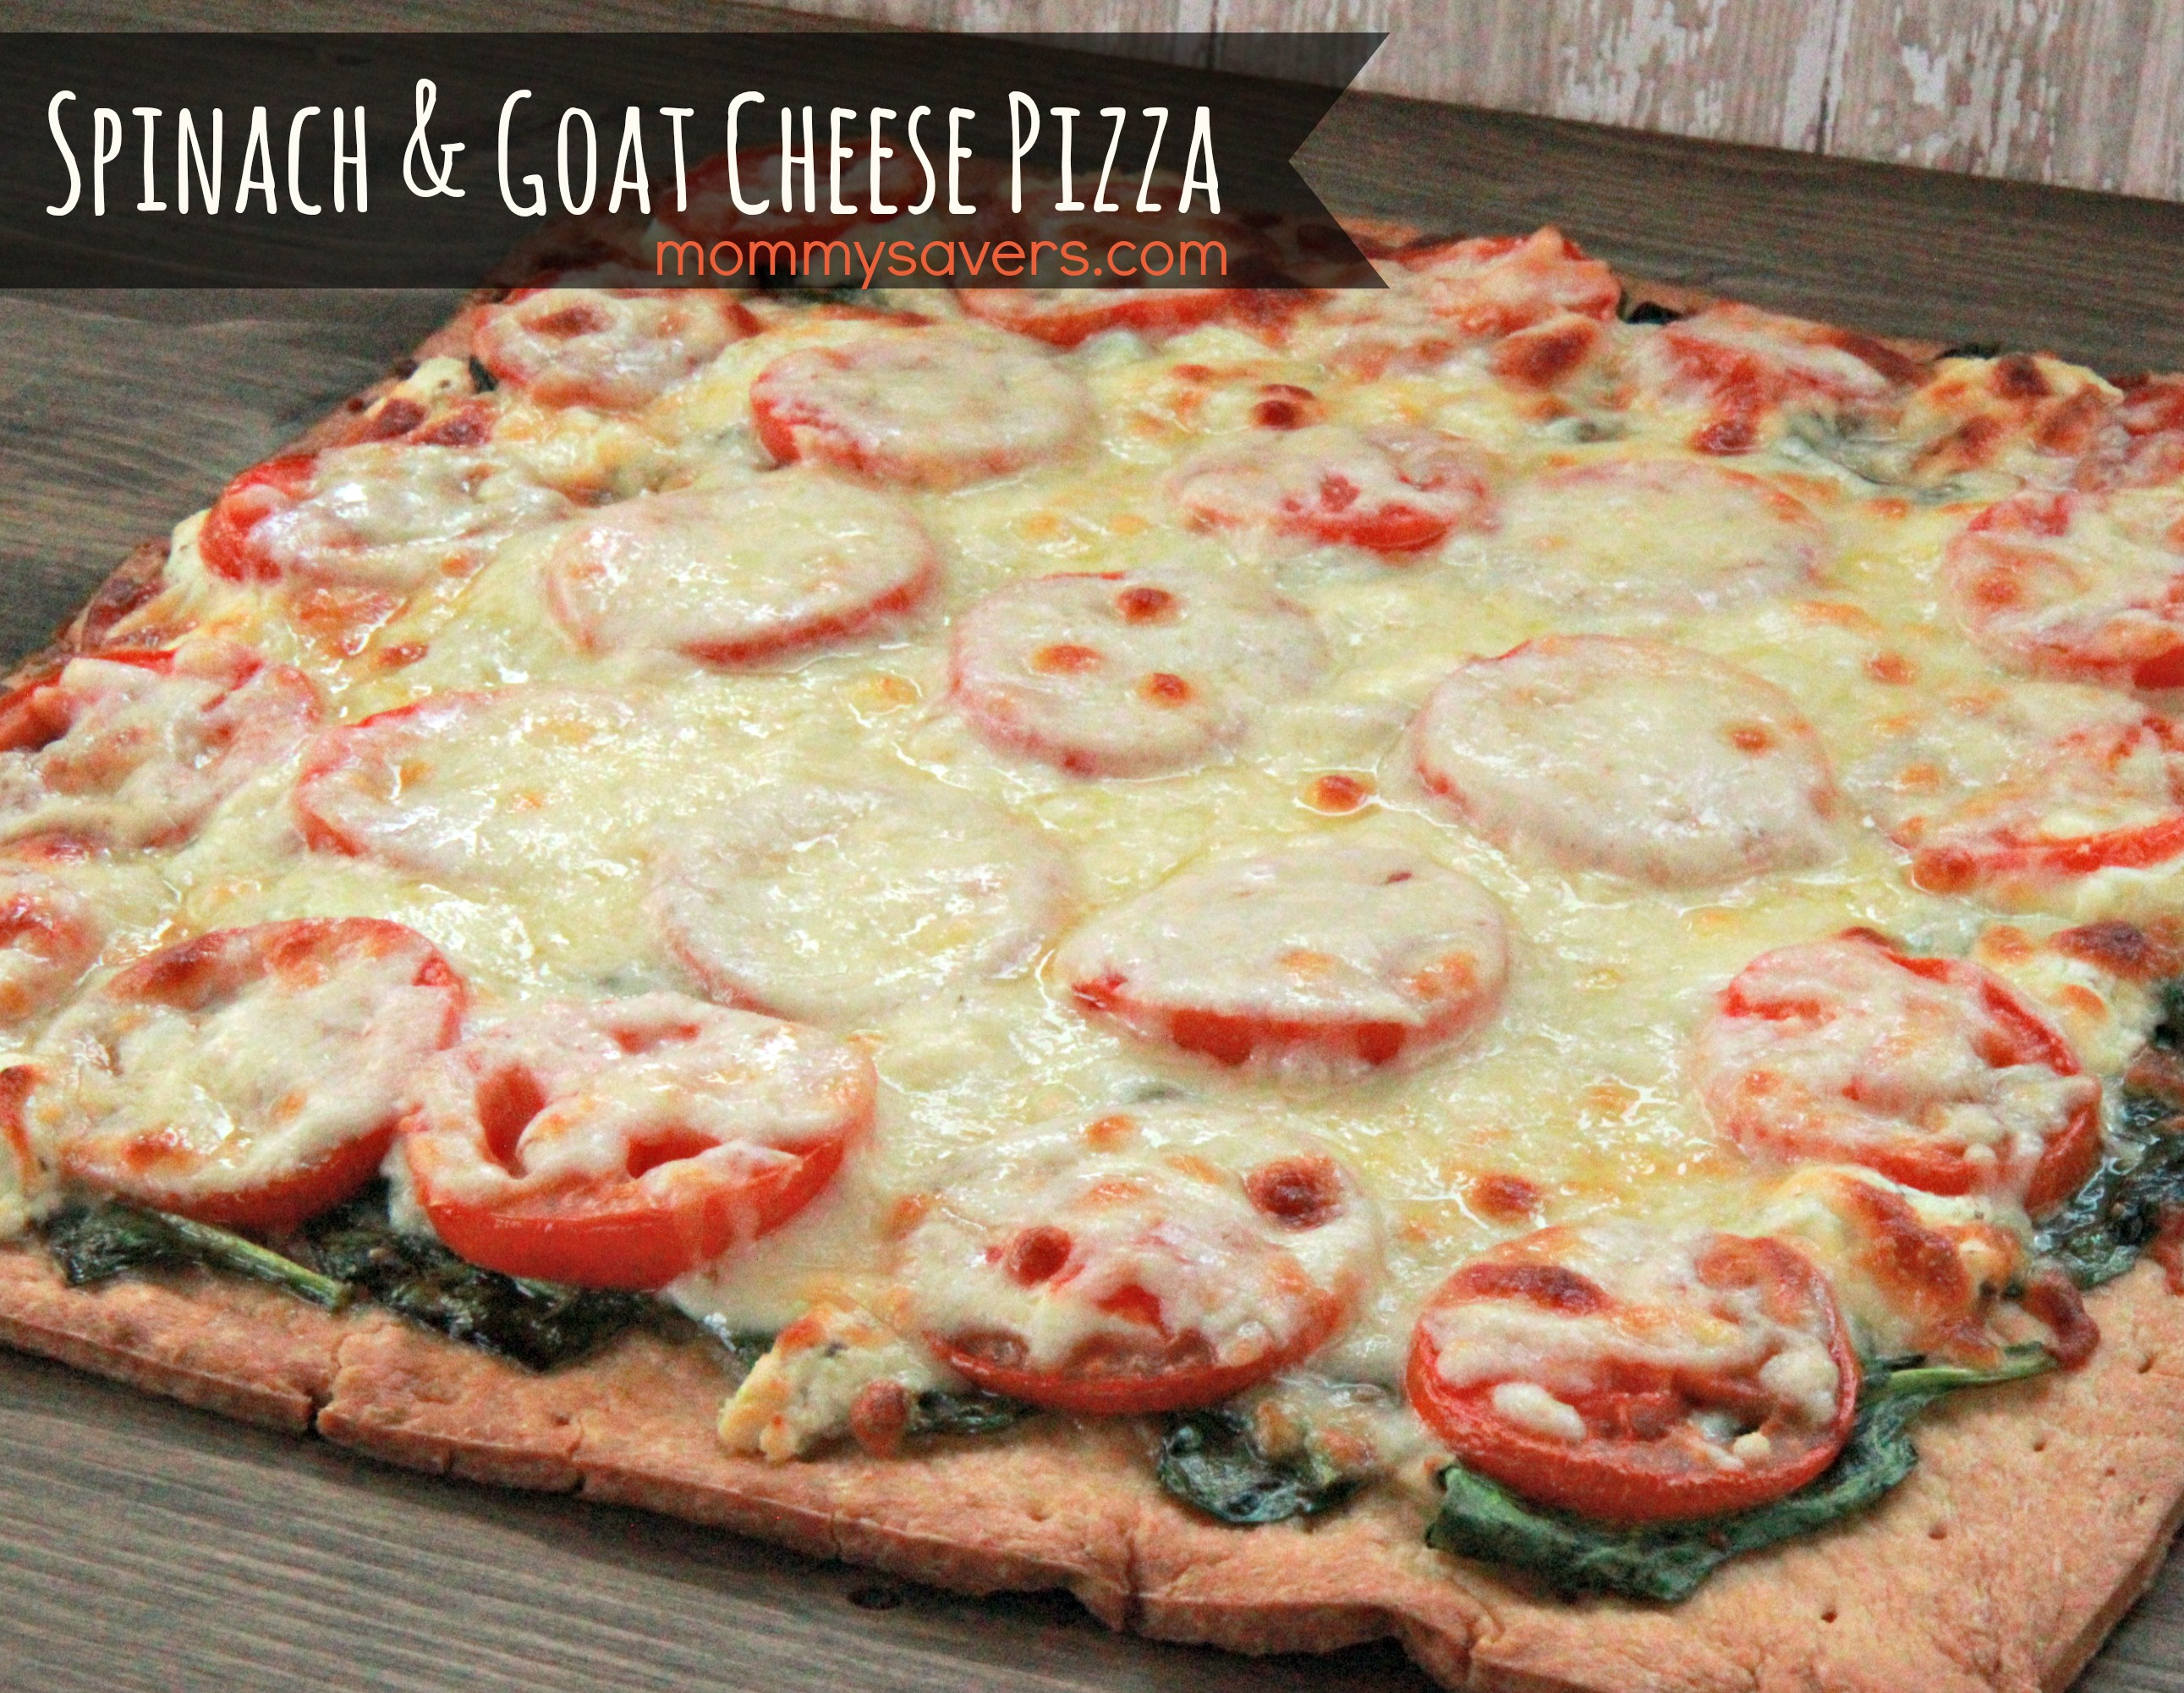 Spinach and Goat Cheese Pizza Recipe